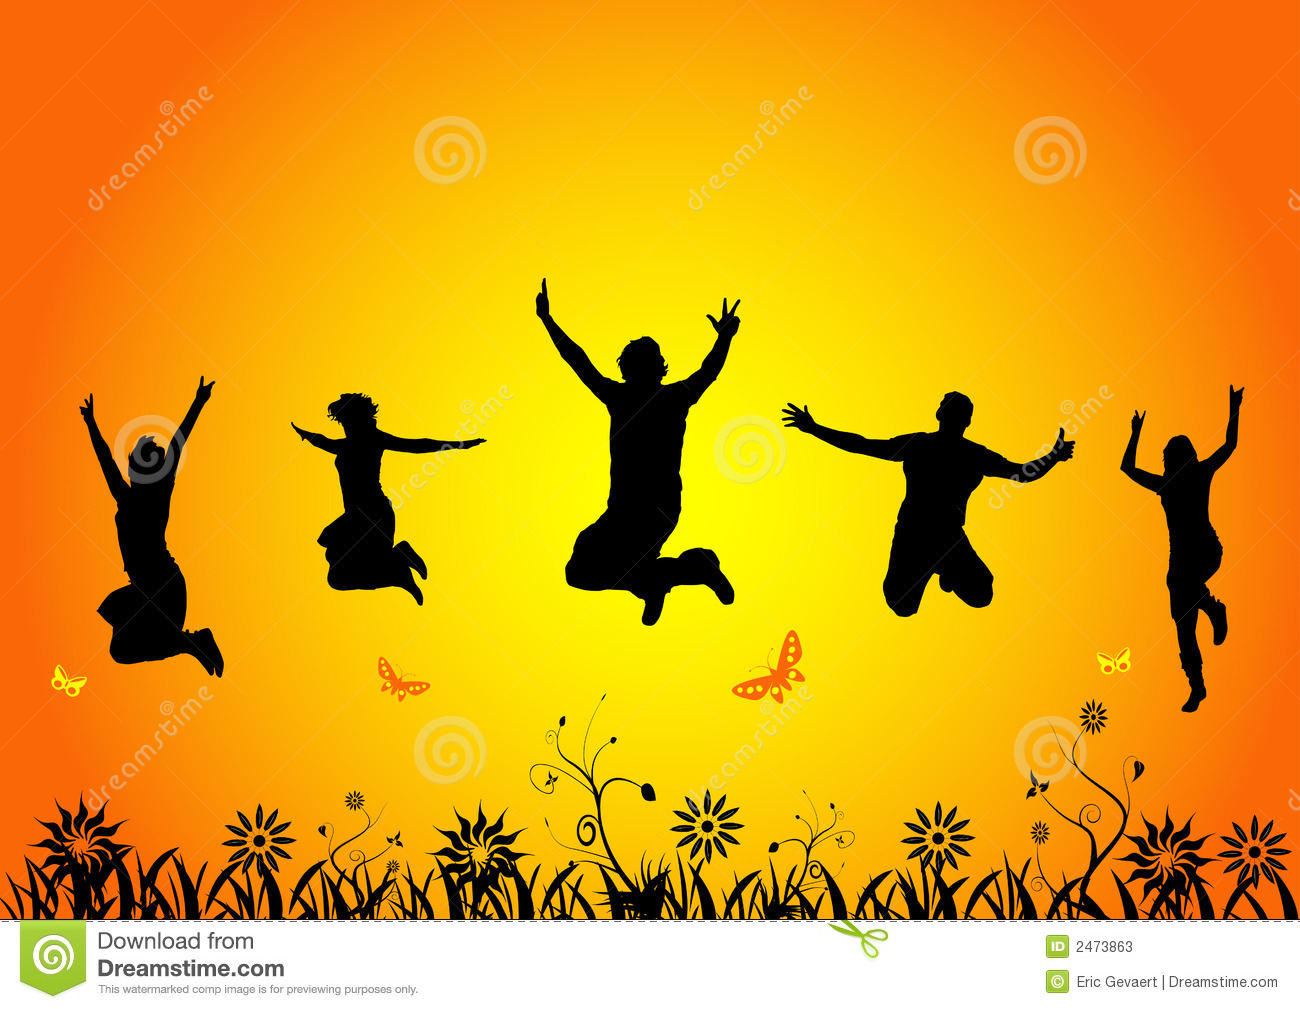 happy-people-jumping-2473863.jpg